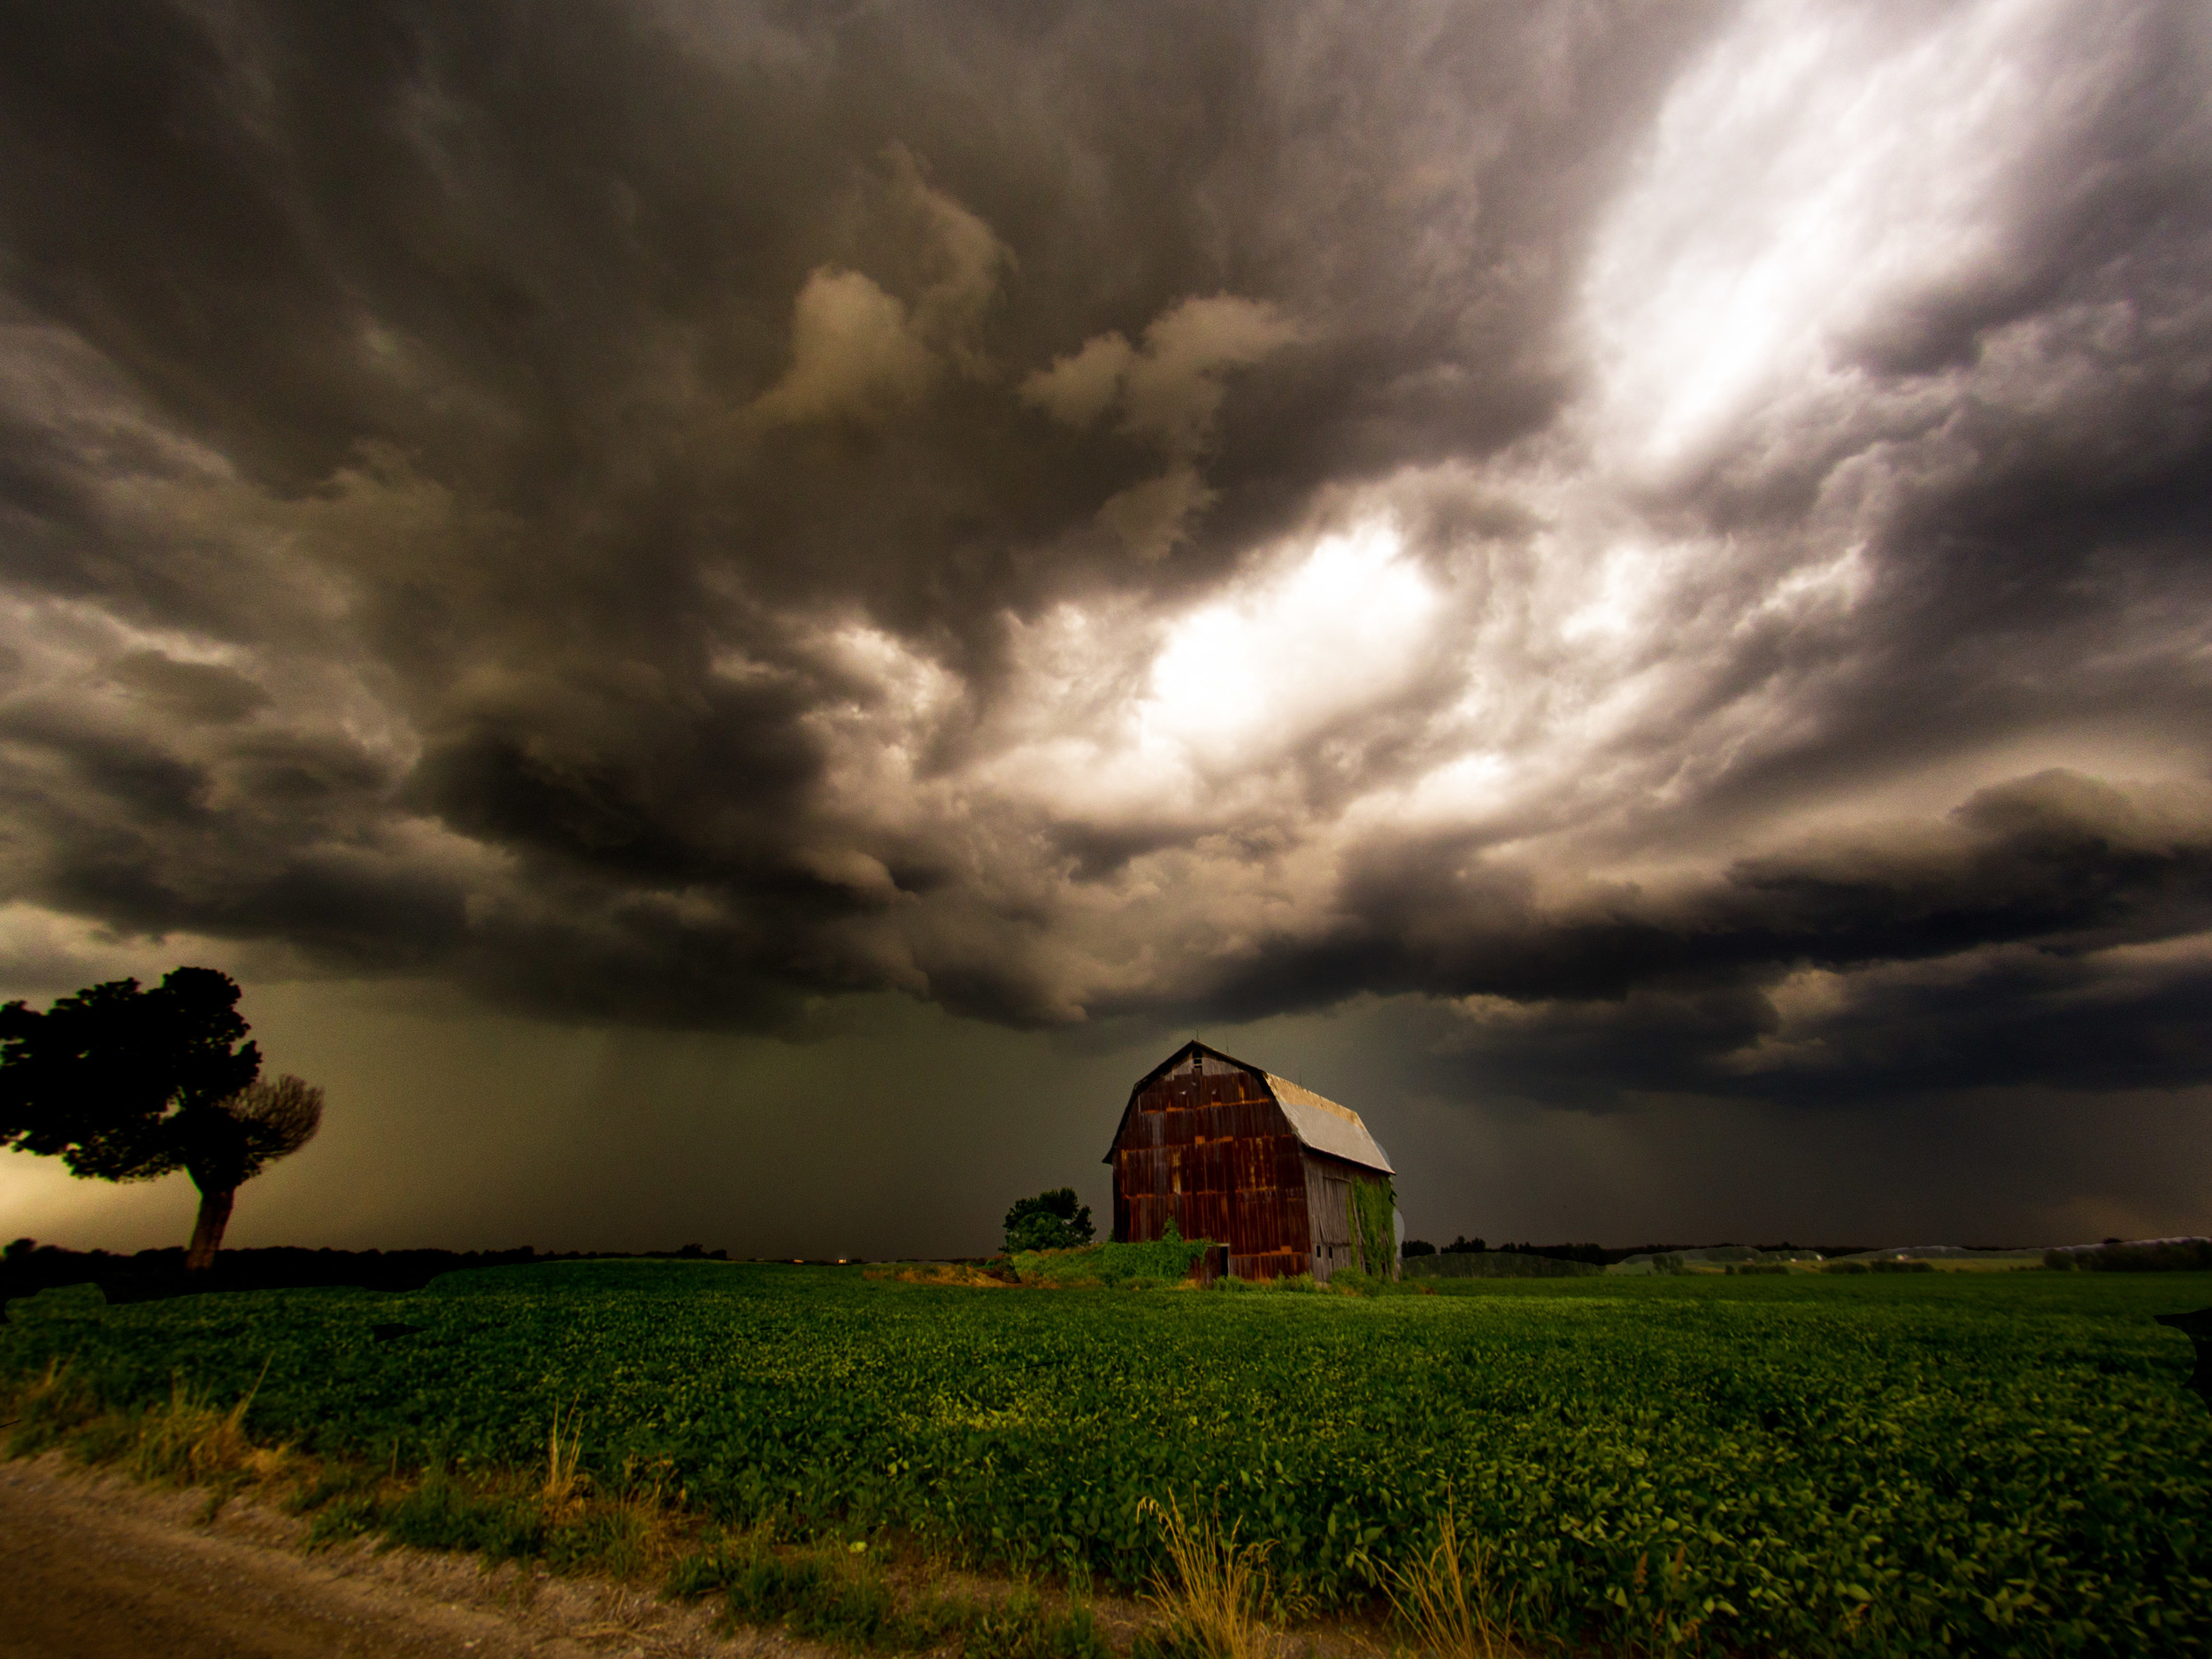 Shot during a summer storm in Eaton County